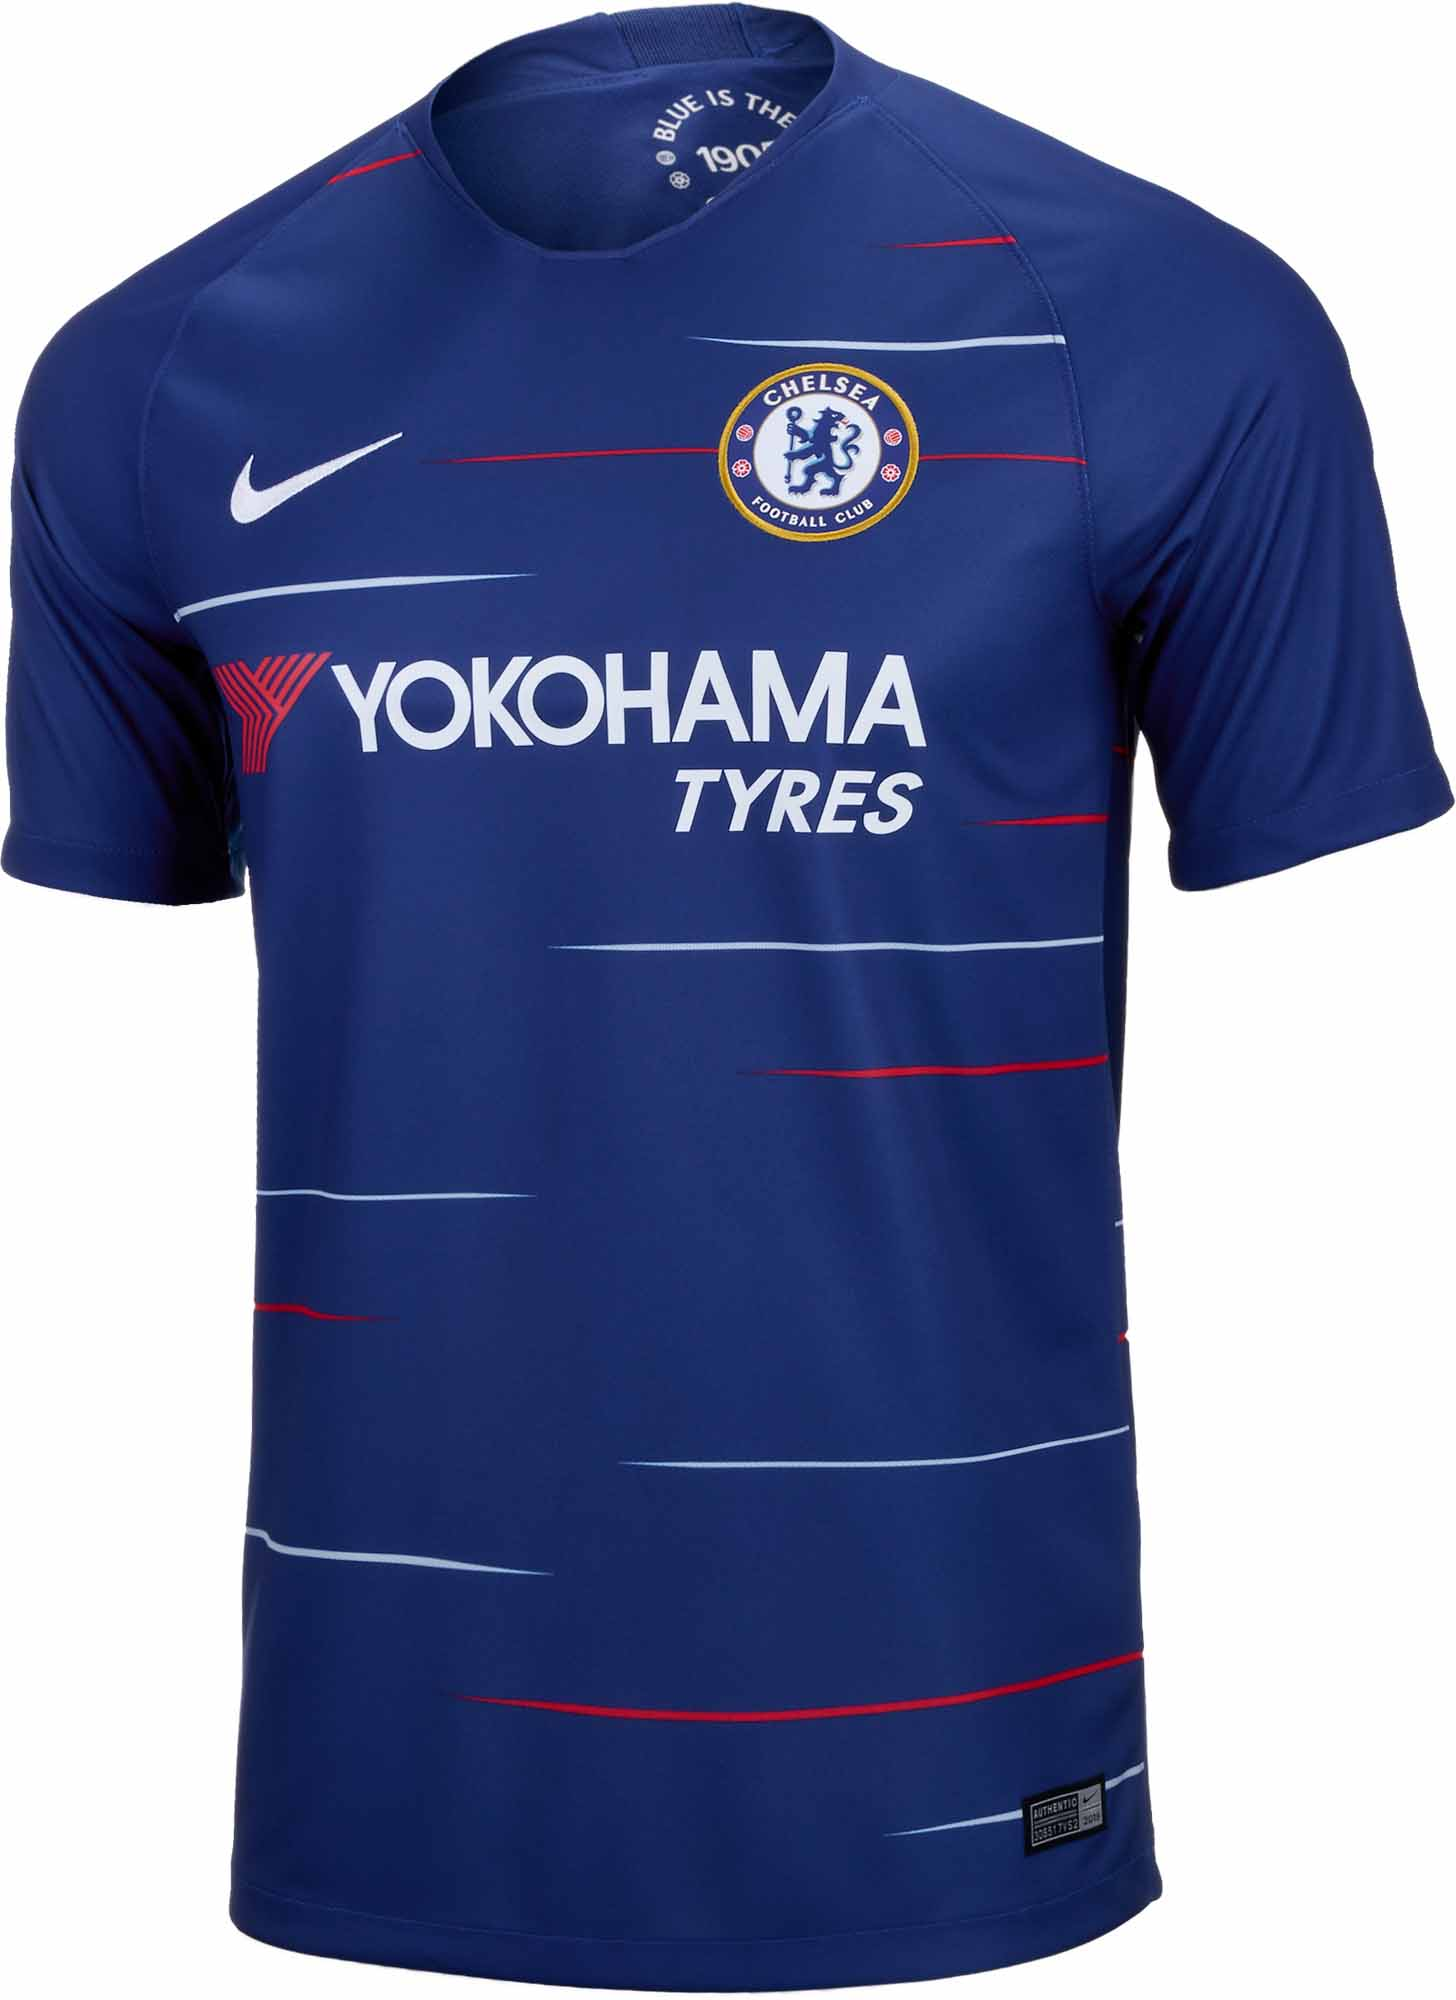 9a6450e4439 Kids 2018 19 Nike Chelsea Home Jersey - Soccer Master